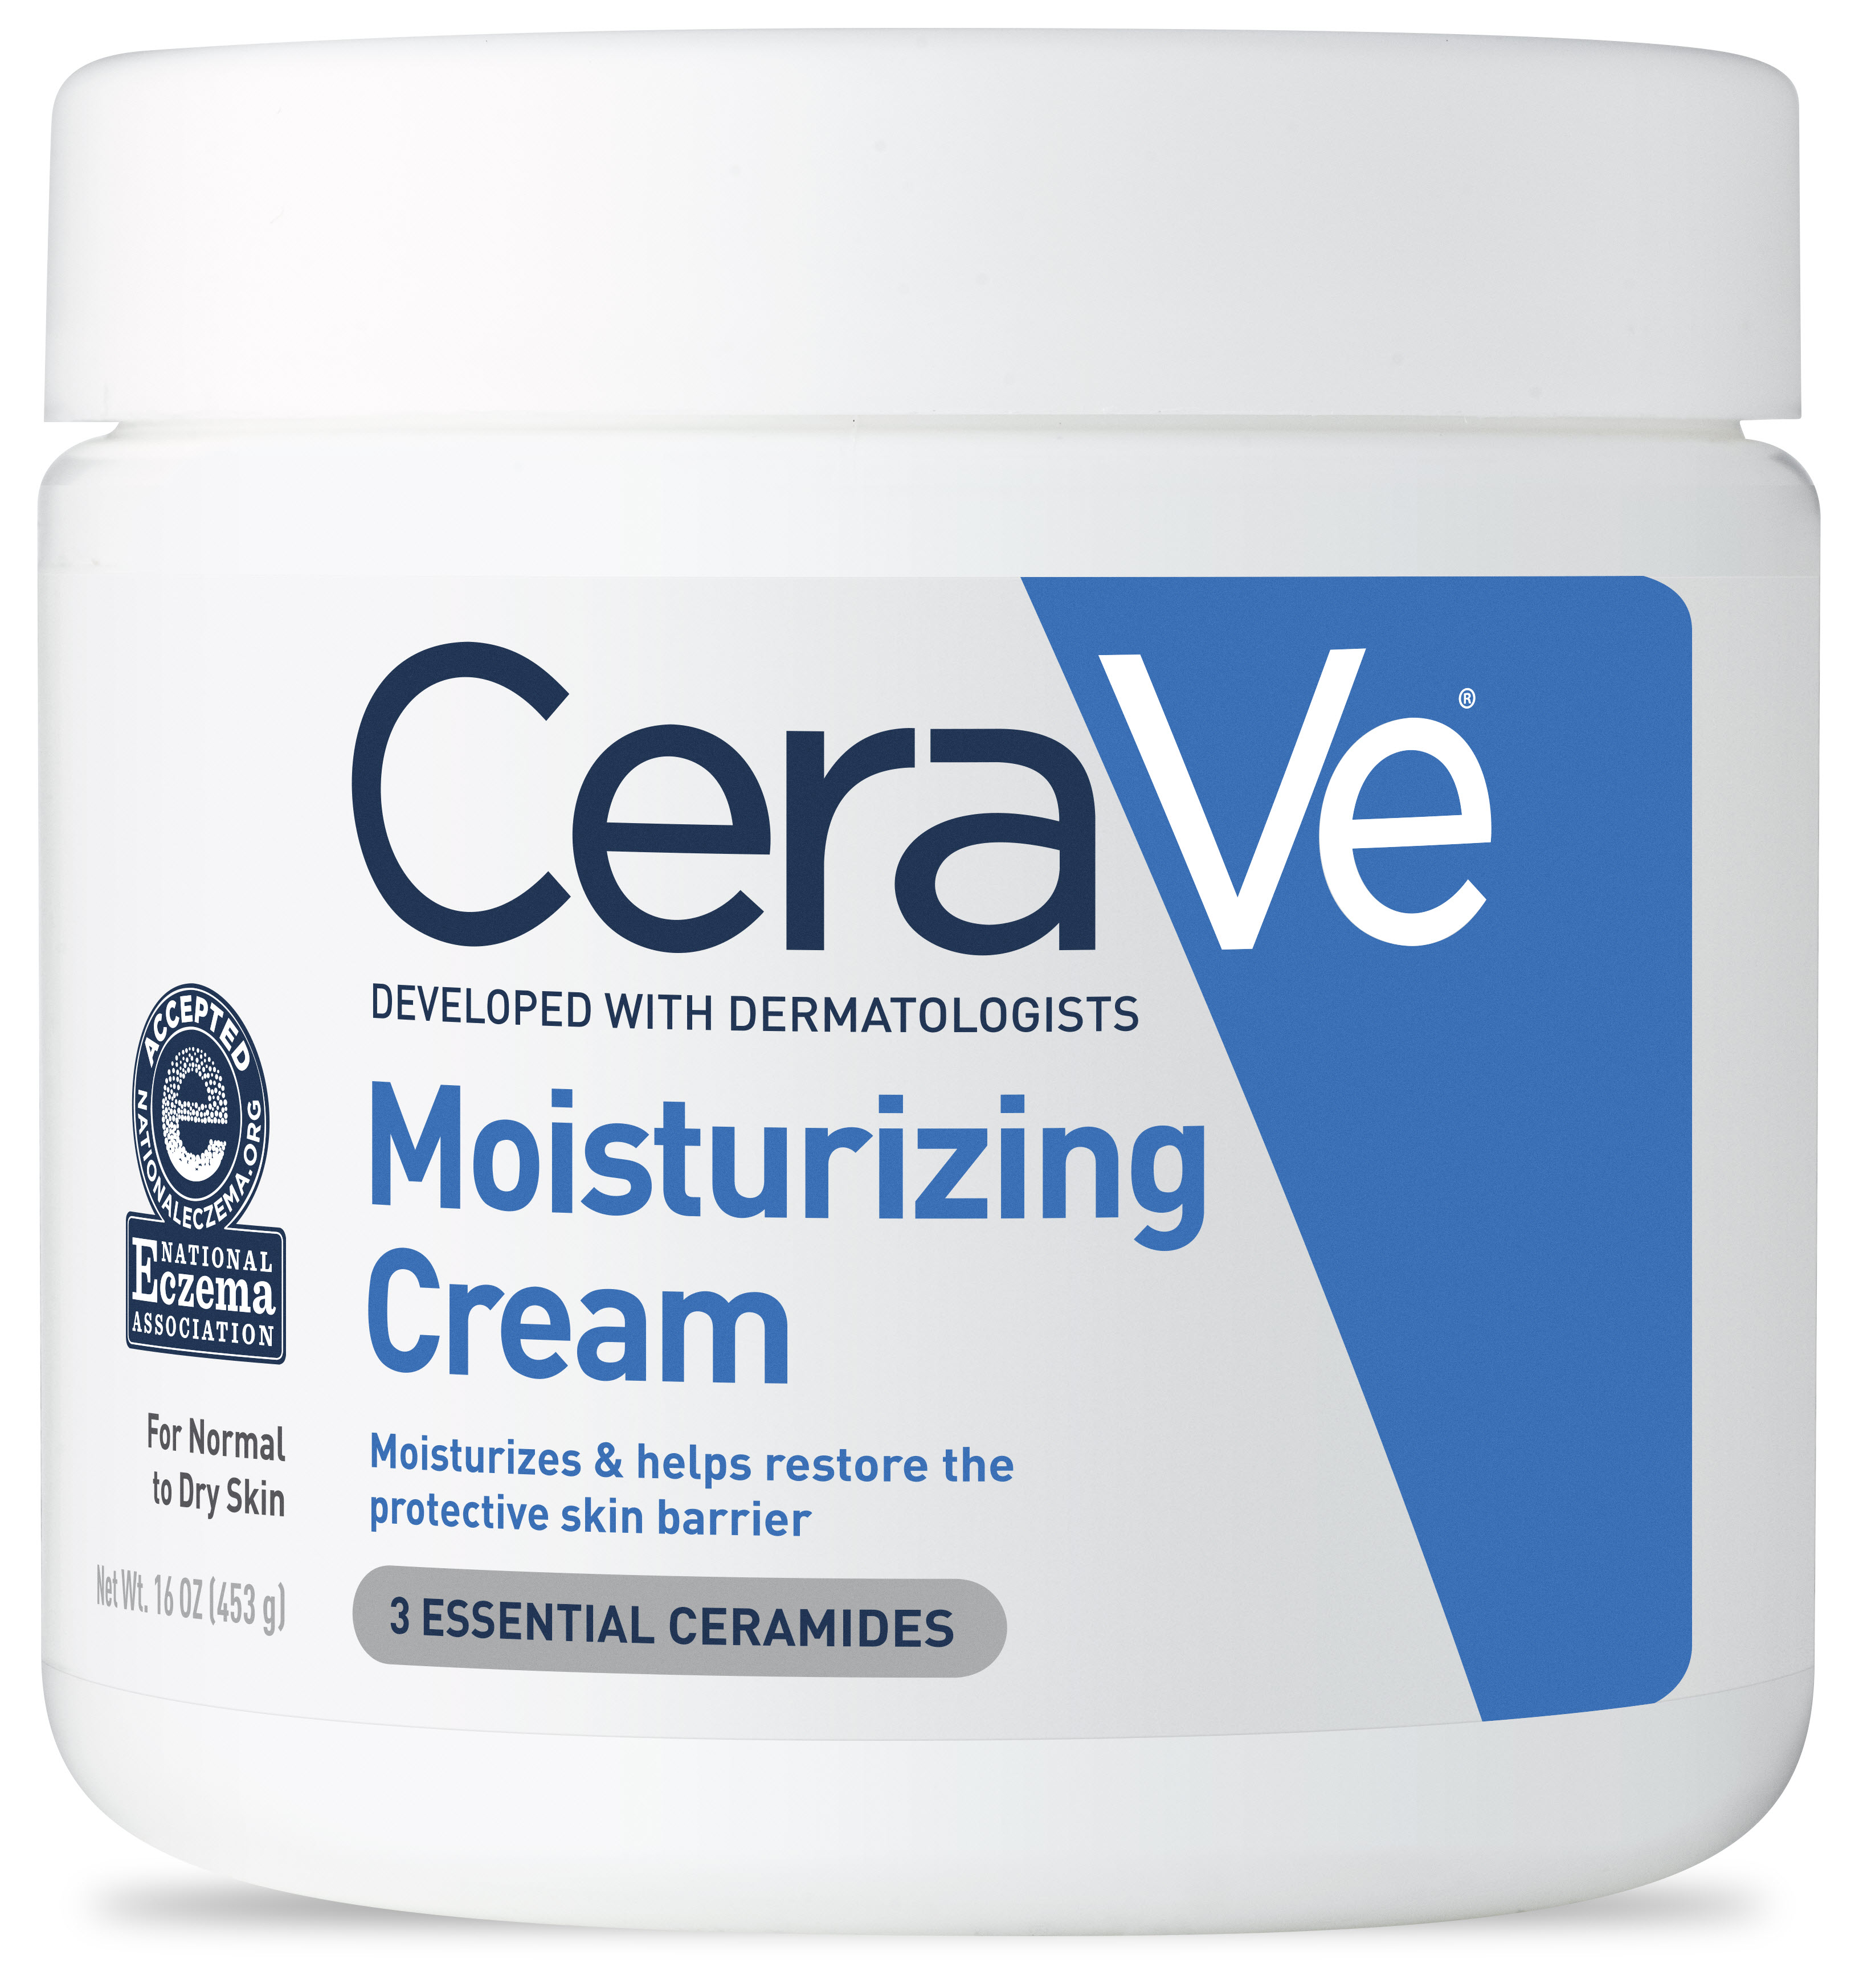 CeraVe Moisturizing Cream, Face and Body Moisturizer, 16 oz.